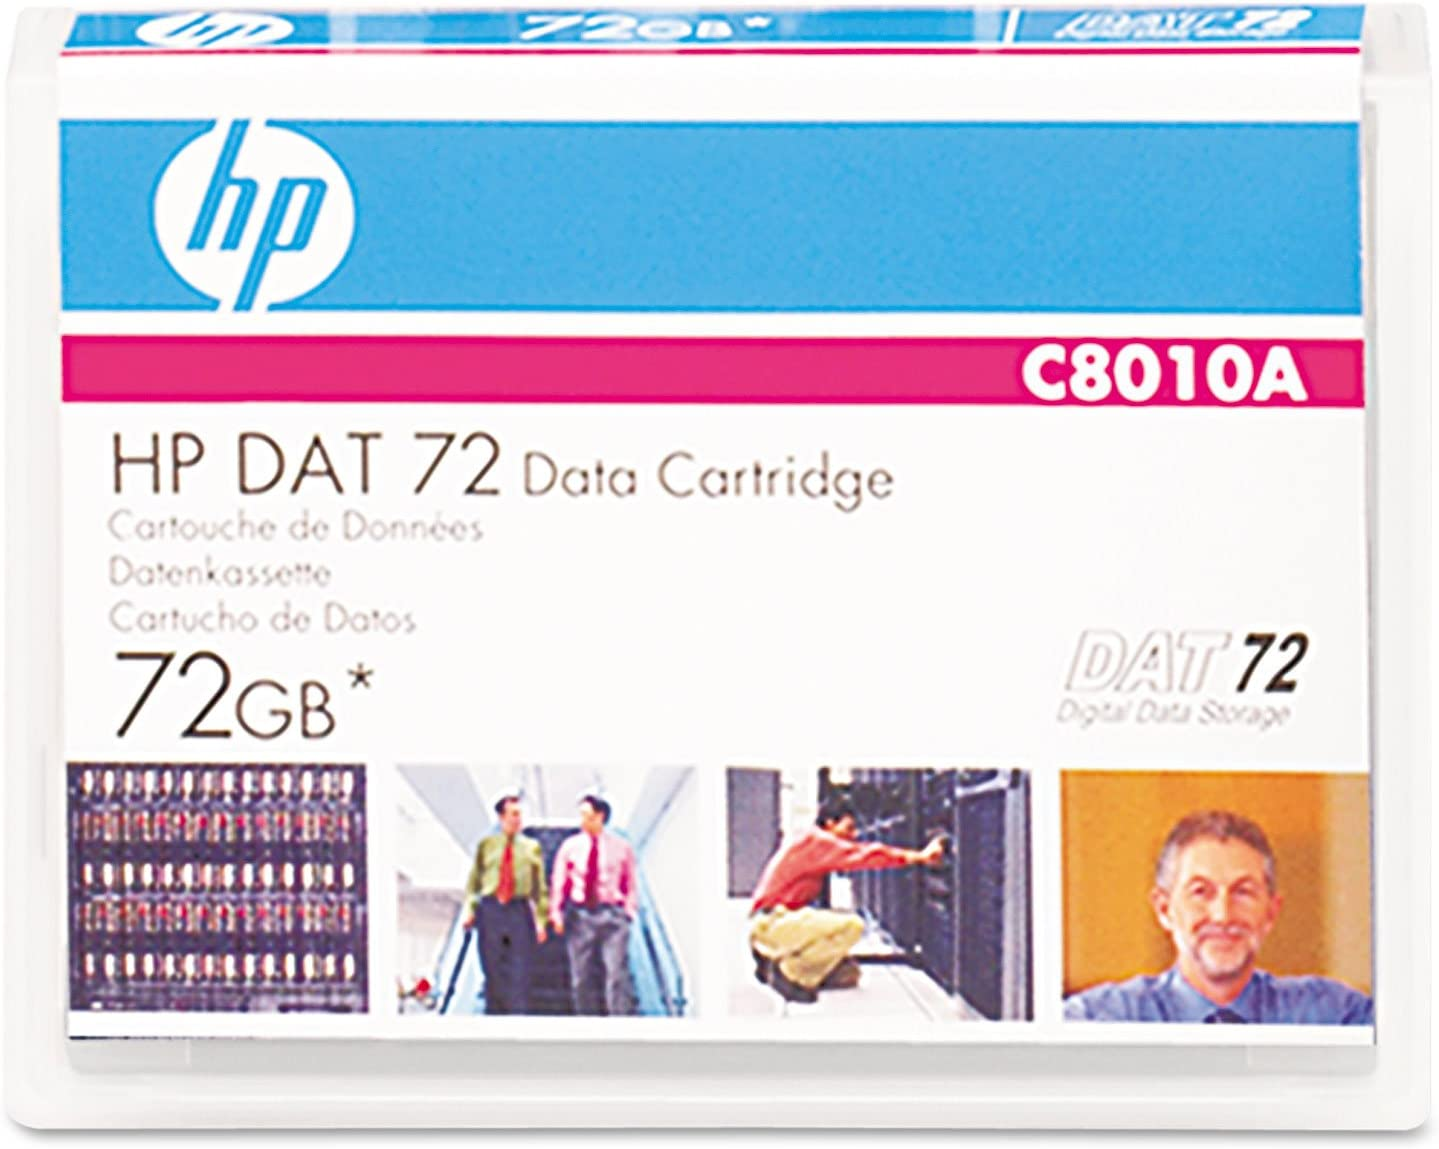 HP C8010A DAT 40 DAT 72 DDS-3 DDS-4 DDS-5 Data Cartridge in Retail Packaging